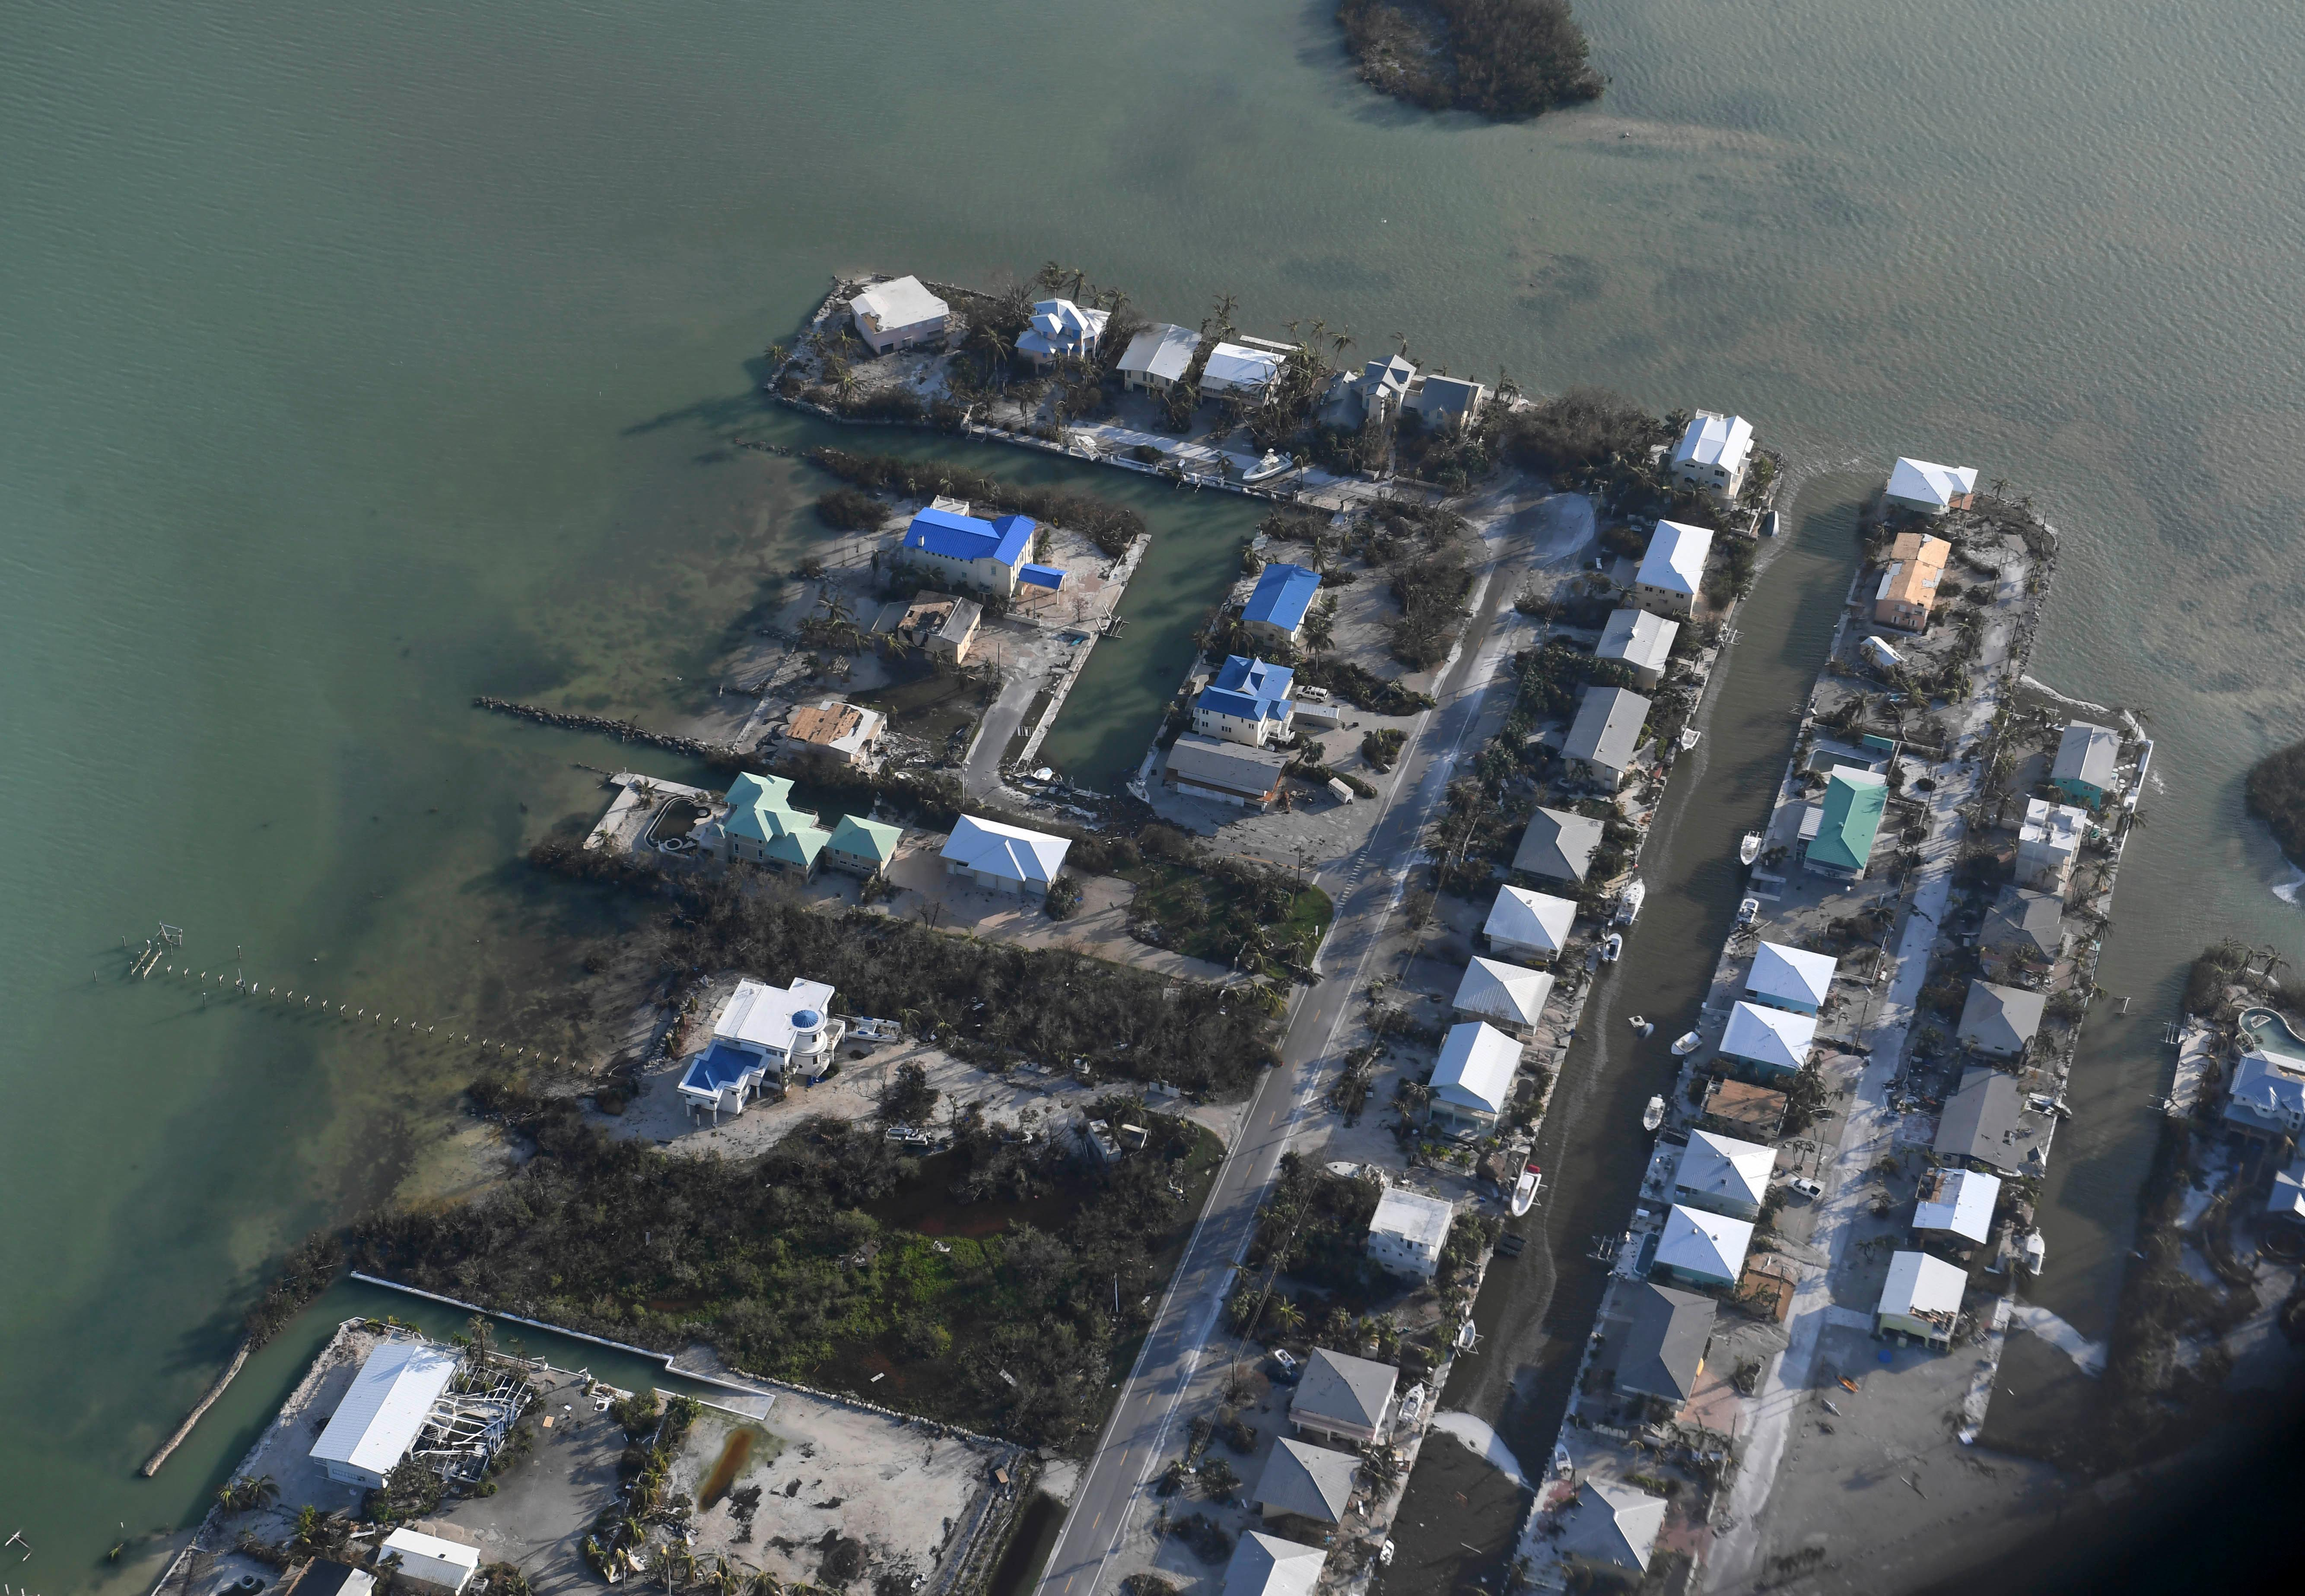 Damaged houses are shown in the aftermath of Hurricane Irma, Monday, Sept. 11, 2017, in the Florida Keys. (Matt McClain/The Washington Post via AP, Pool)